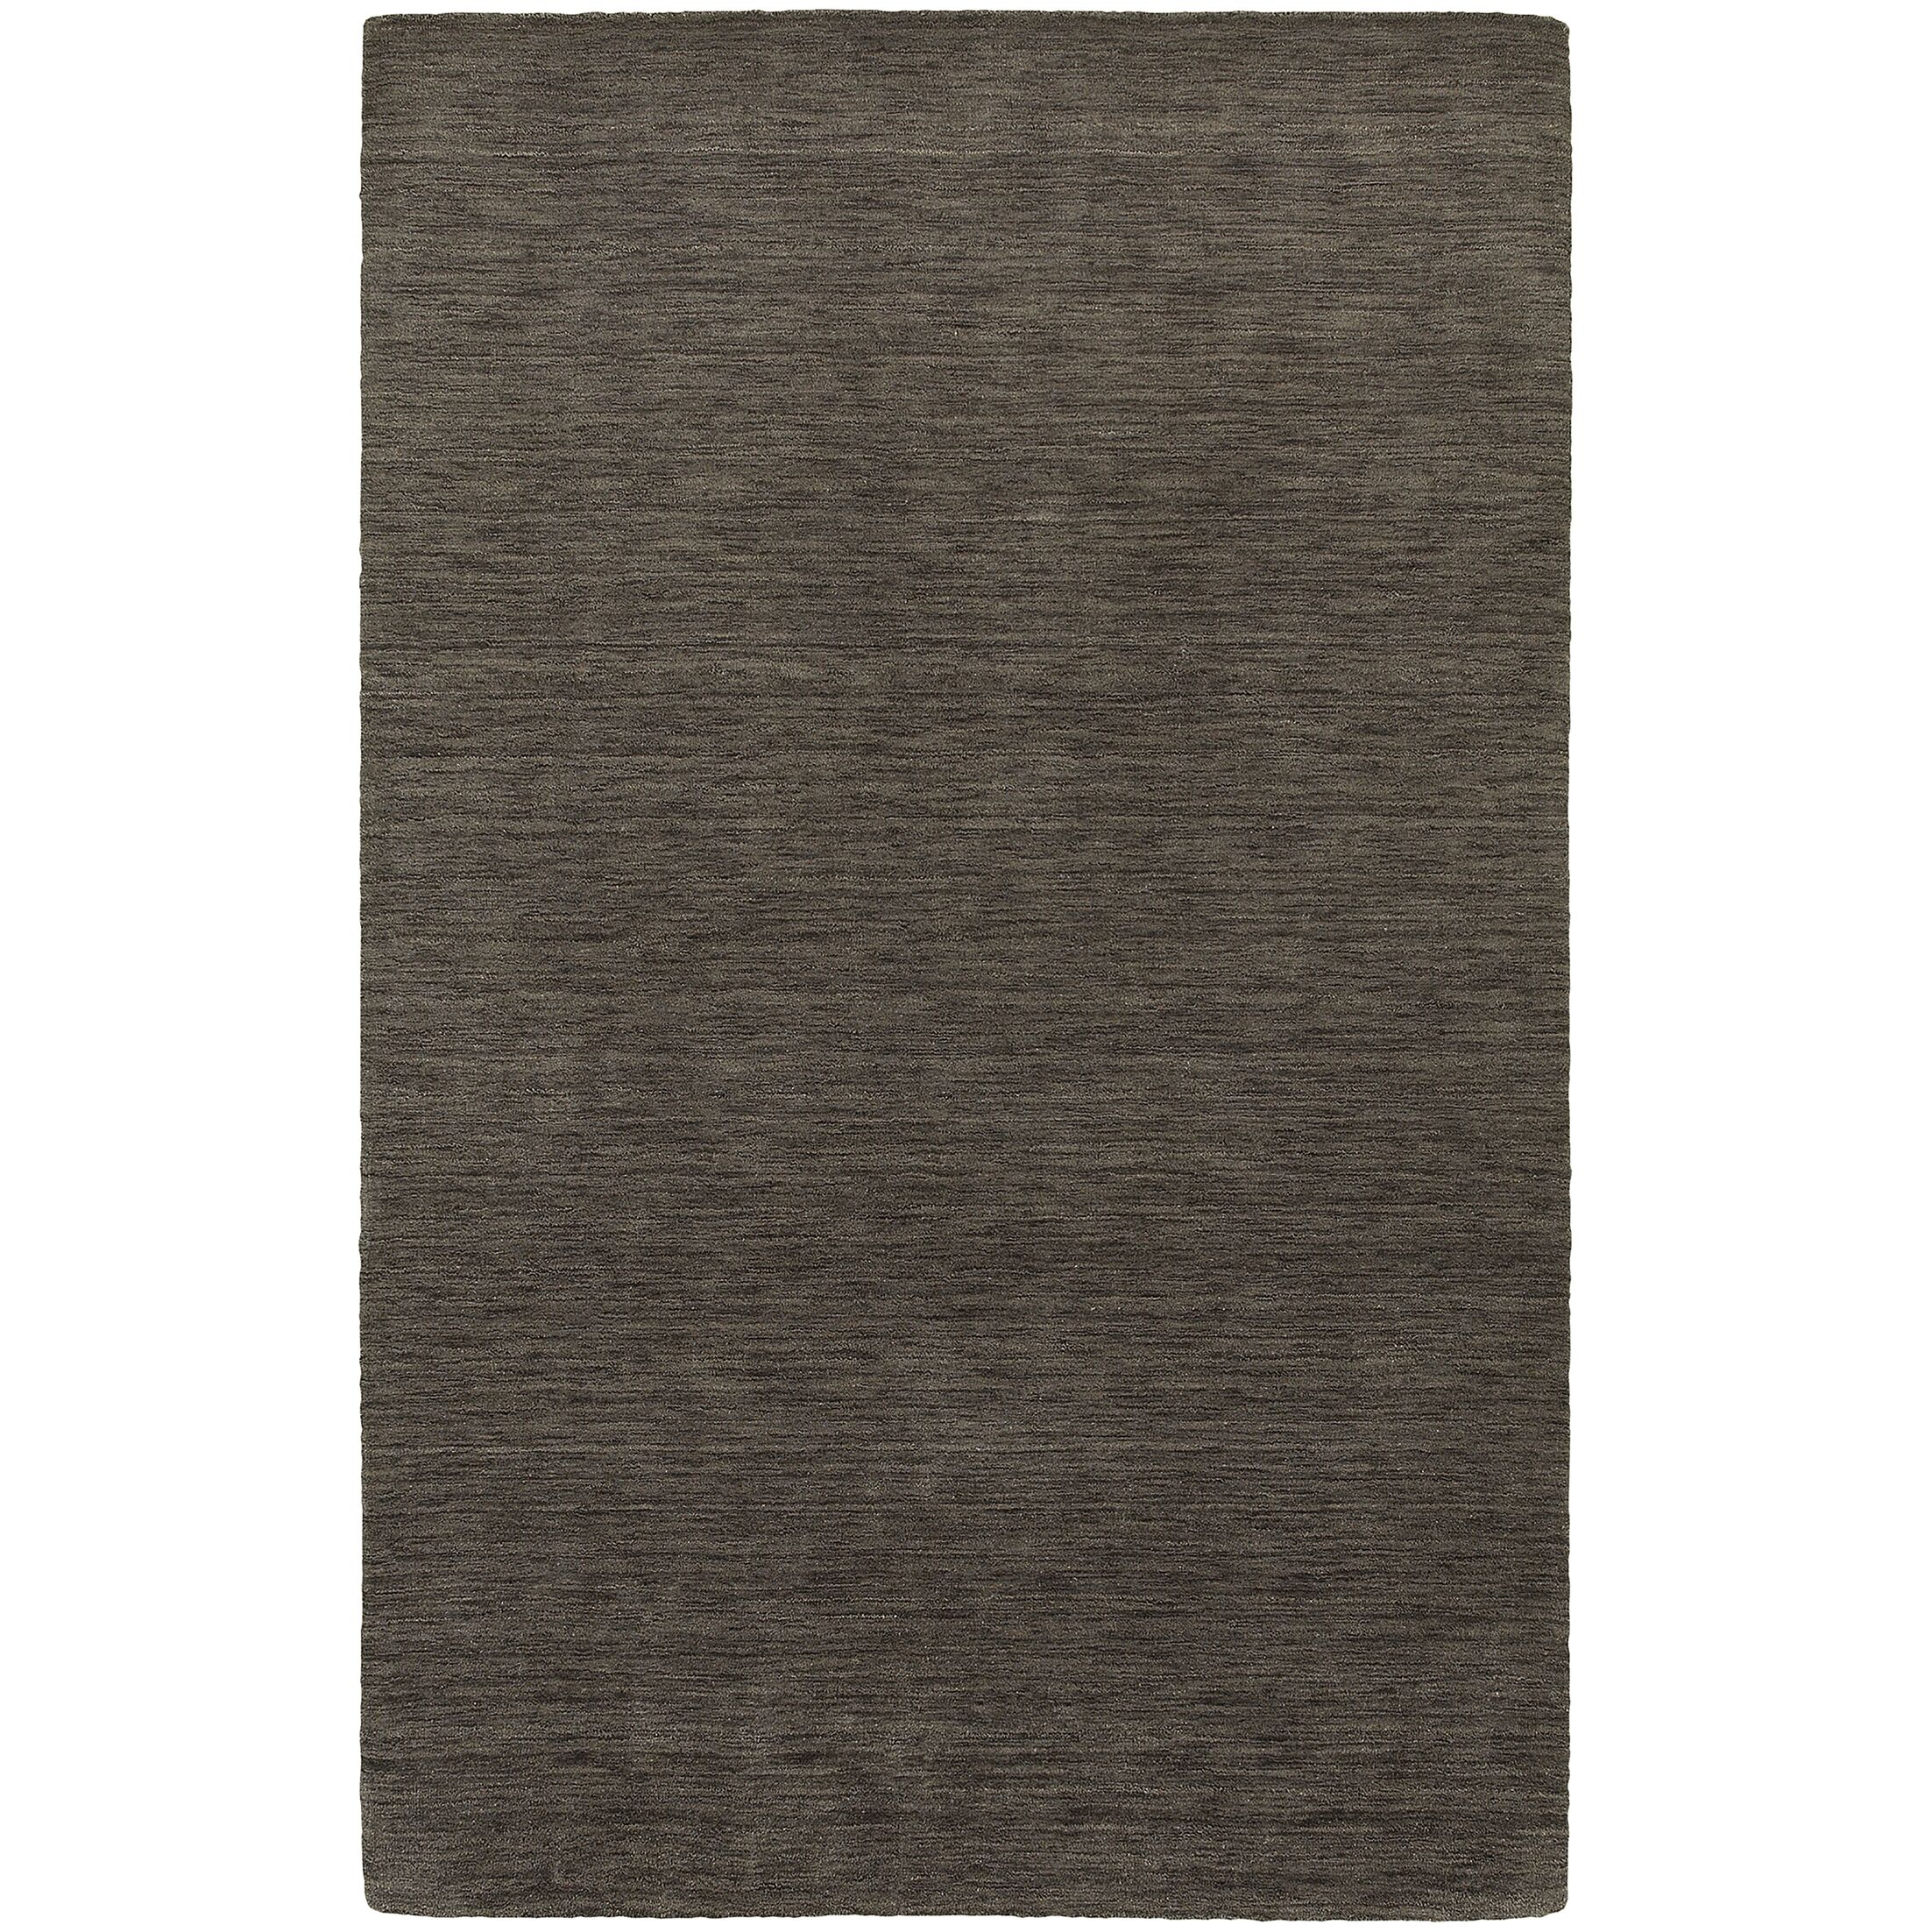 Barrientos Hand-Woven Heathered Charcoal Area Rug Rug Size: Rectangle 6' x 9'